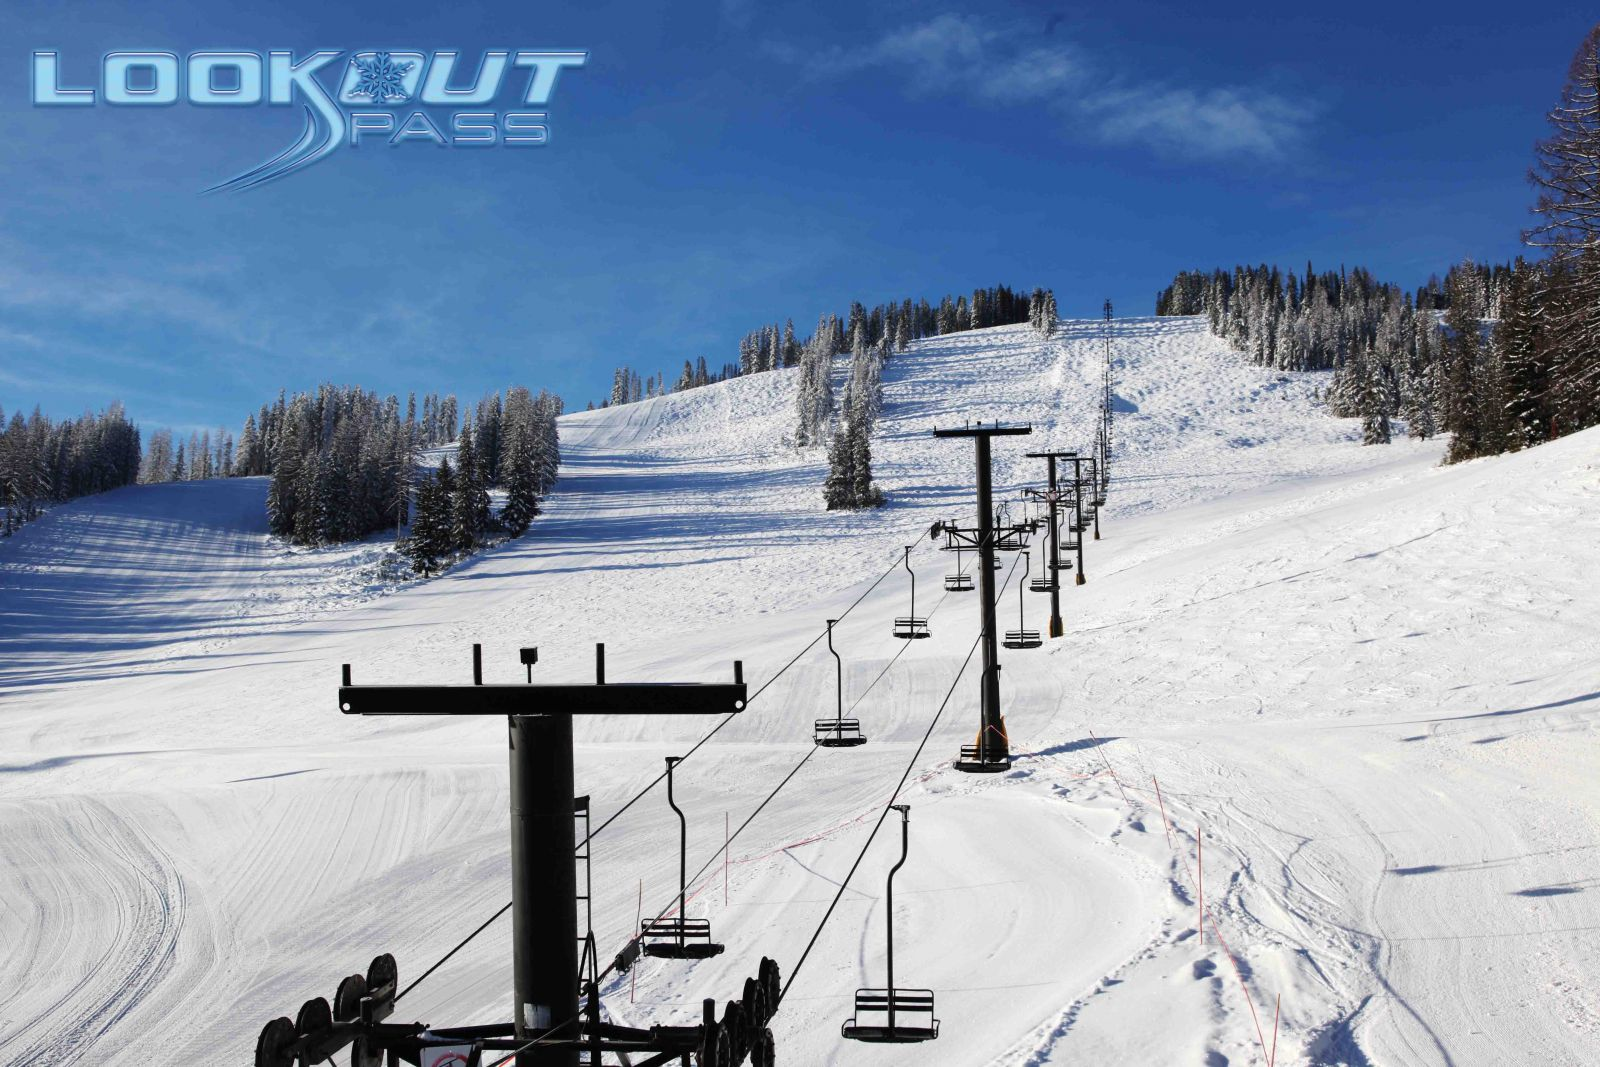 Purchase tickets today to ski at Lookout Pass